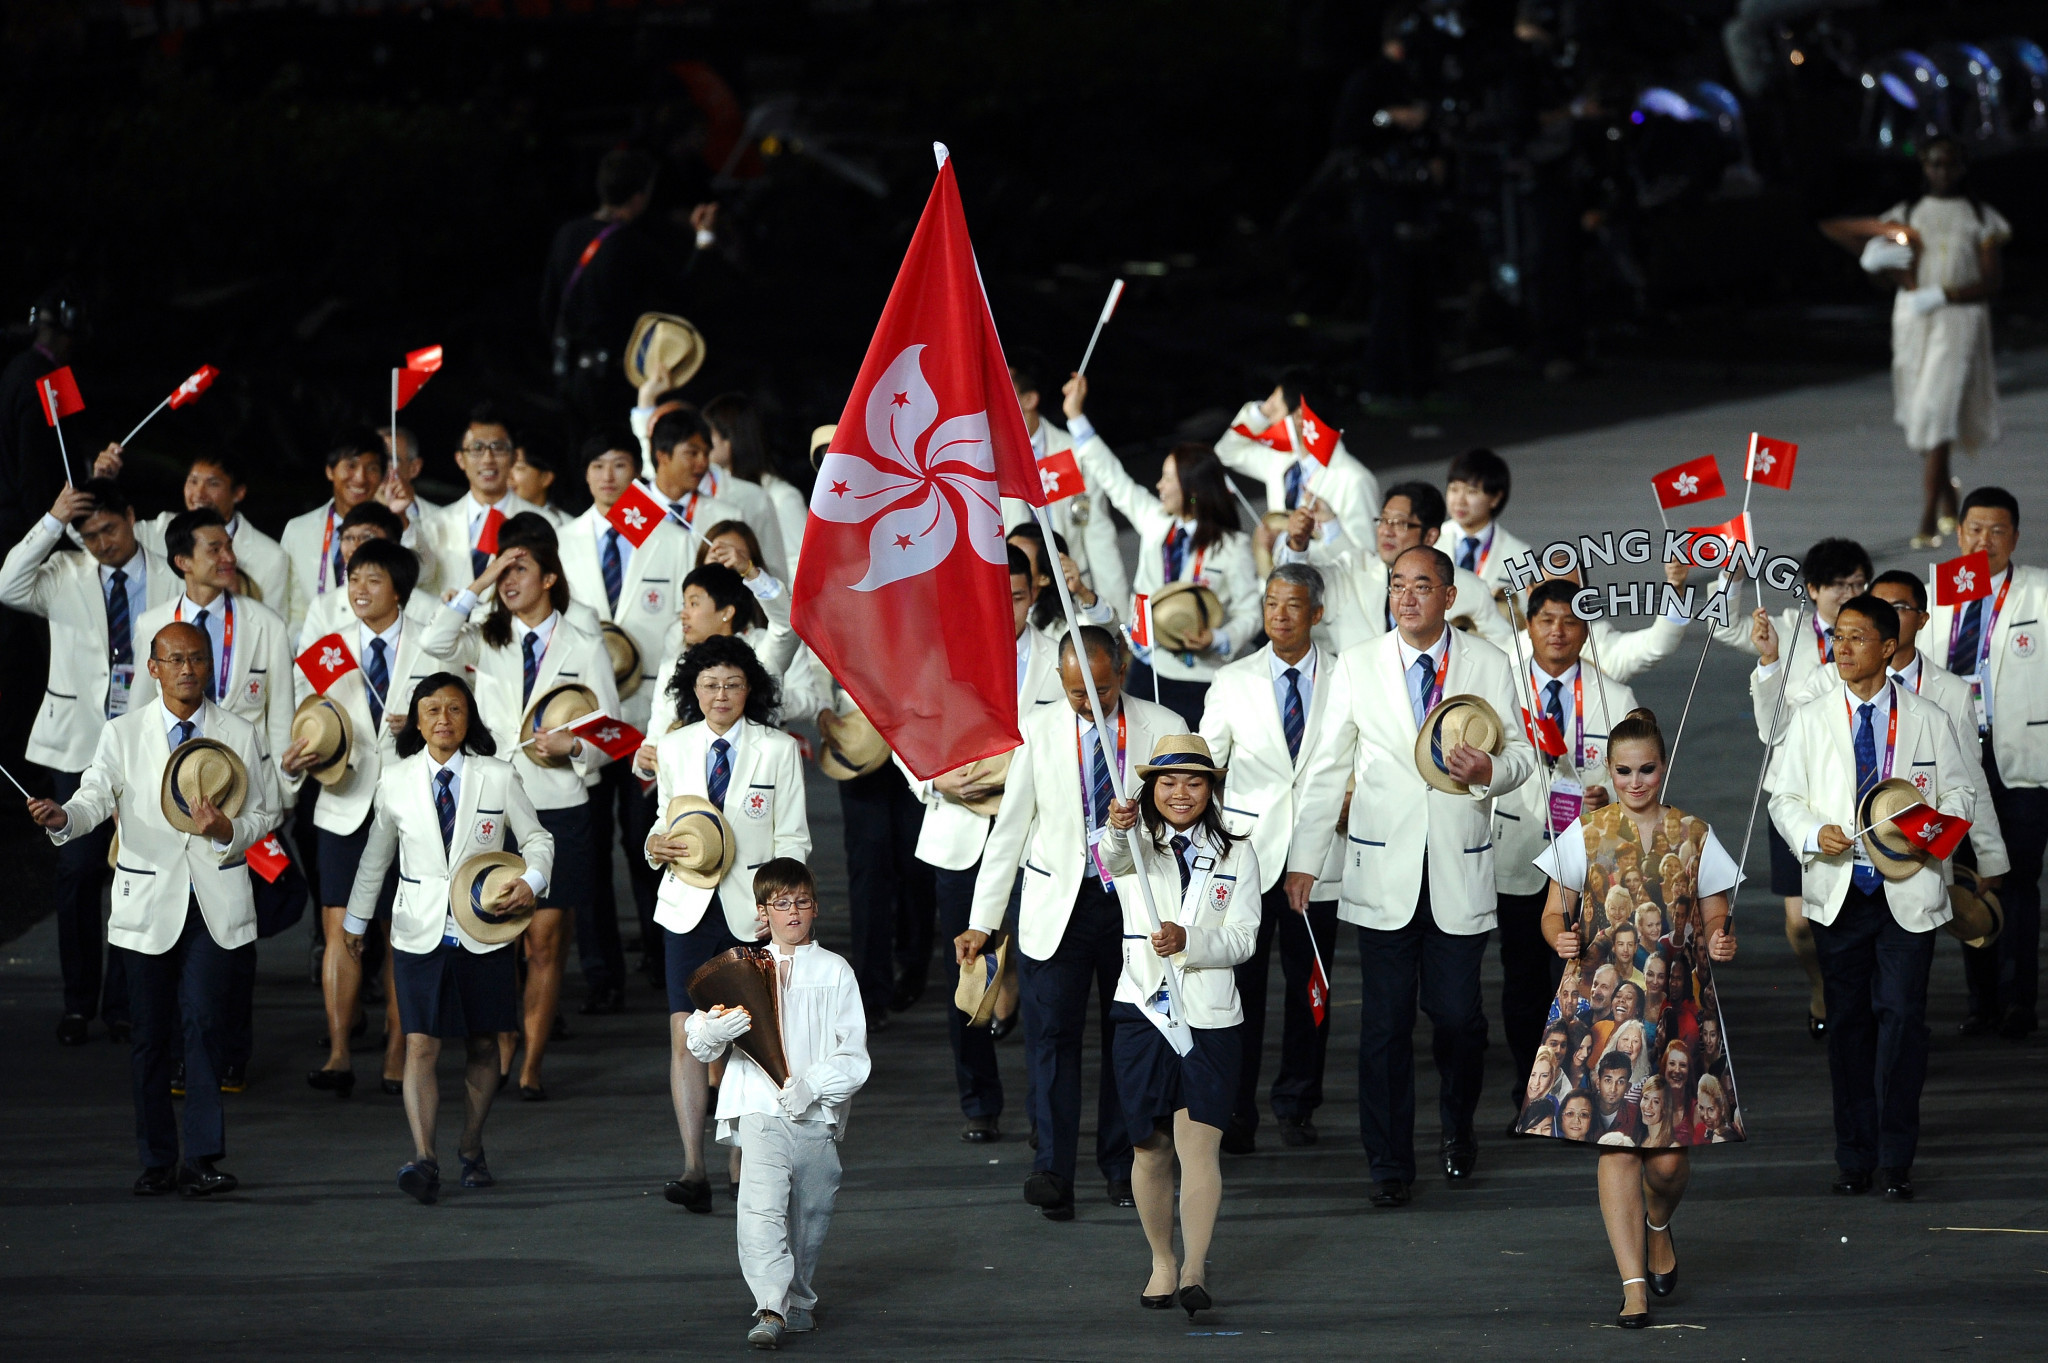 Hong Kong NOC pledges to improve transparency of athlete selection process